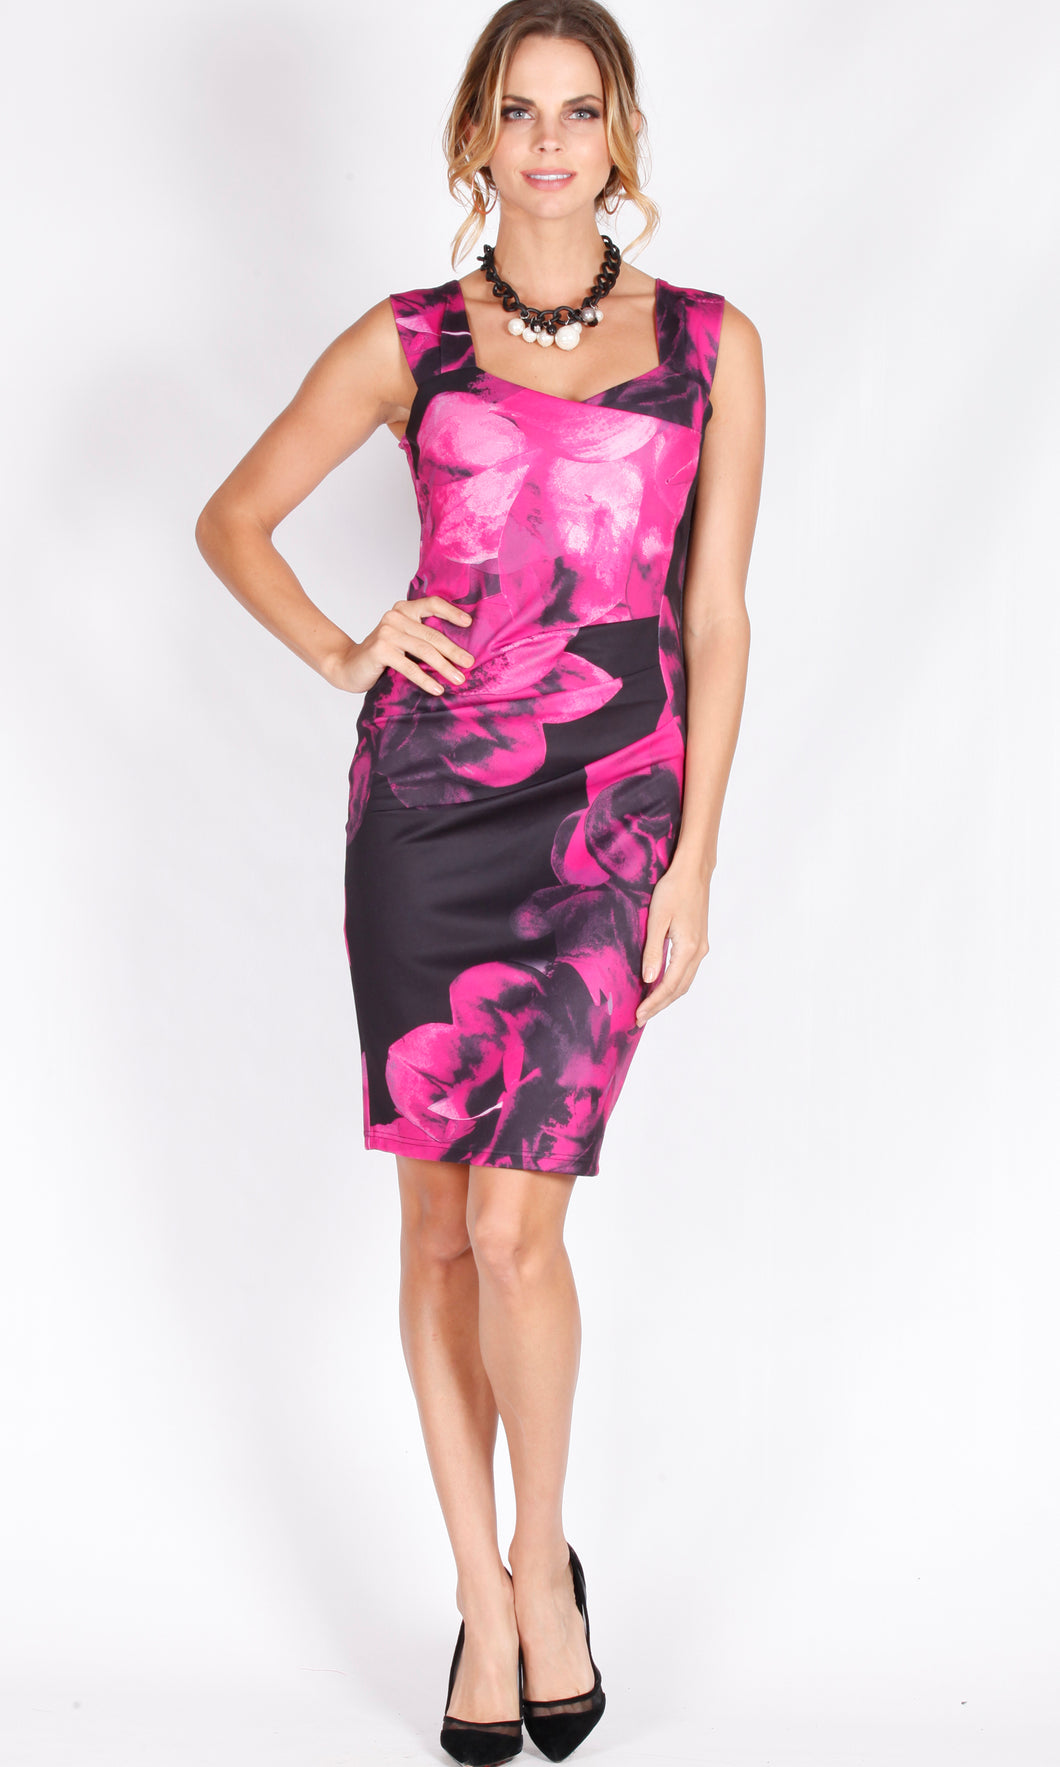 Sweetheart Body Con Dress